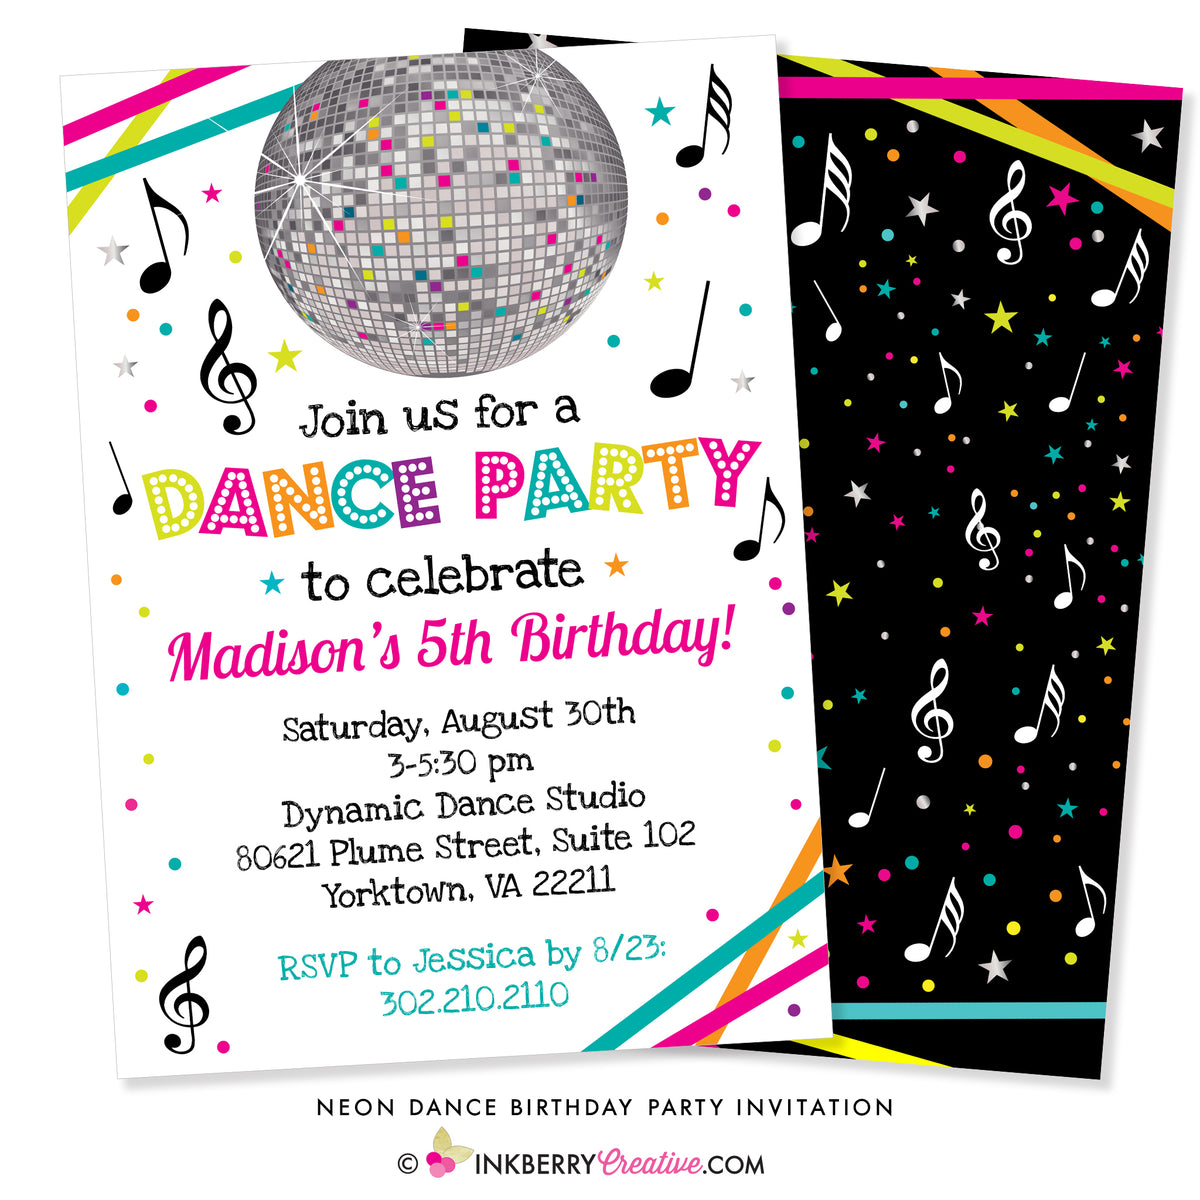 Neon Dance Party Birthday Invitation White Inkberry Creative Inc